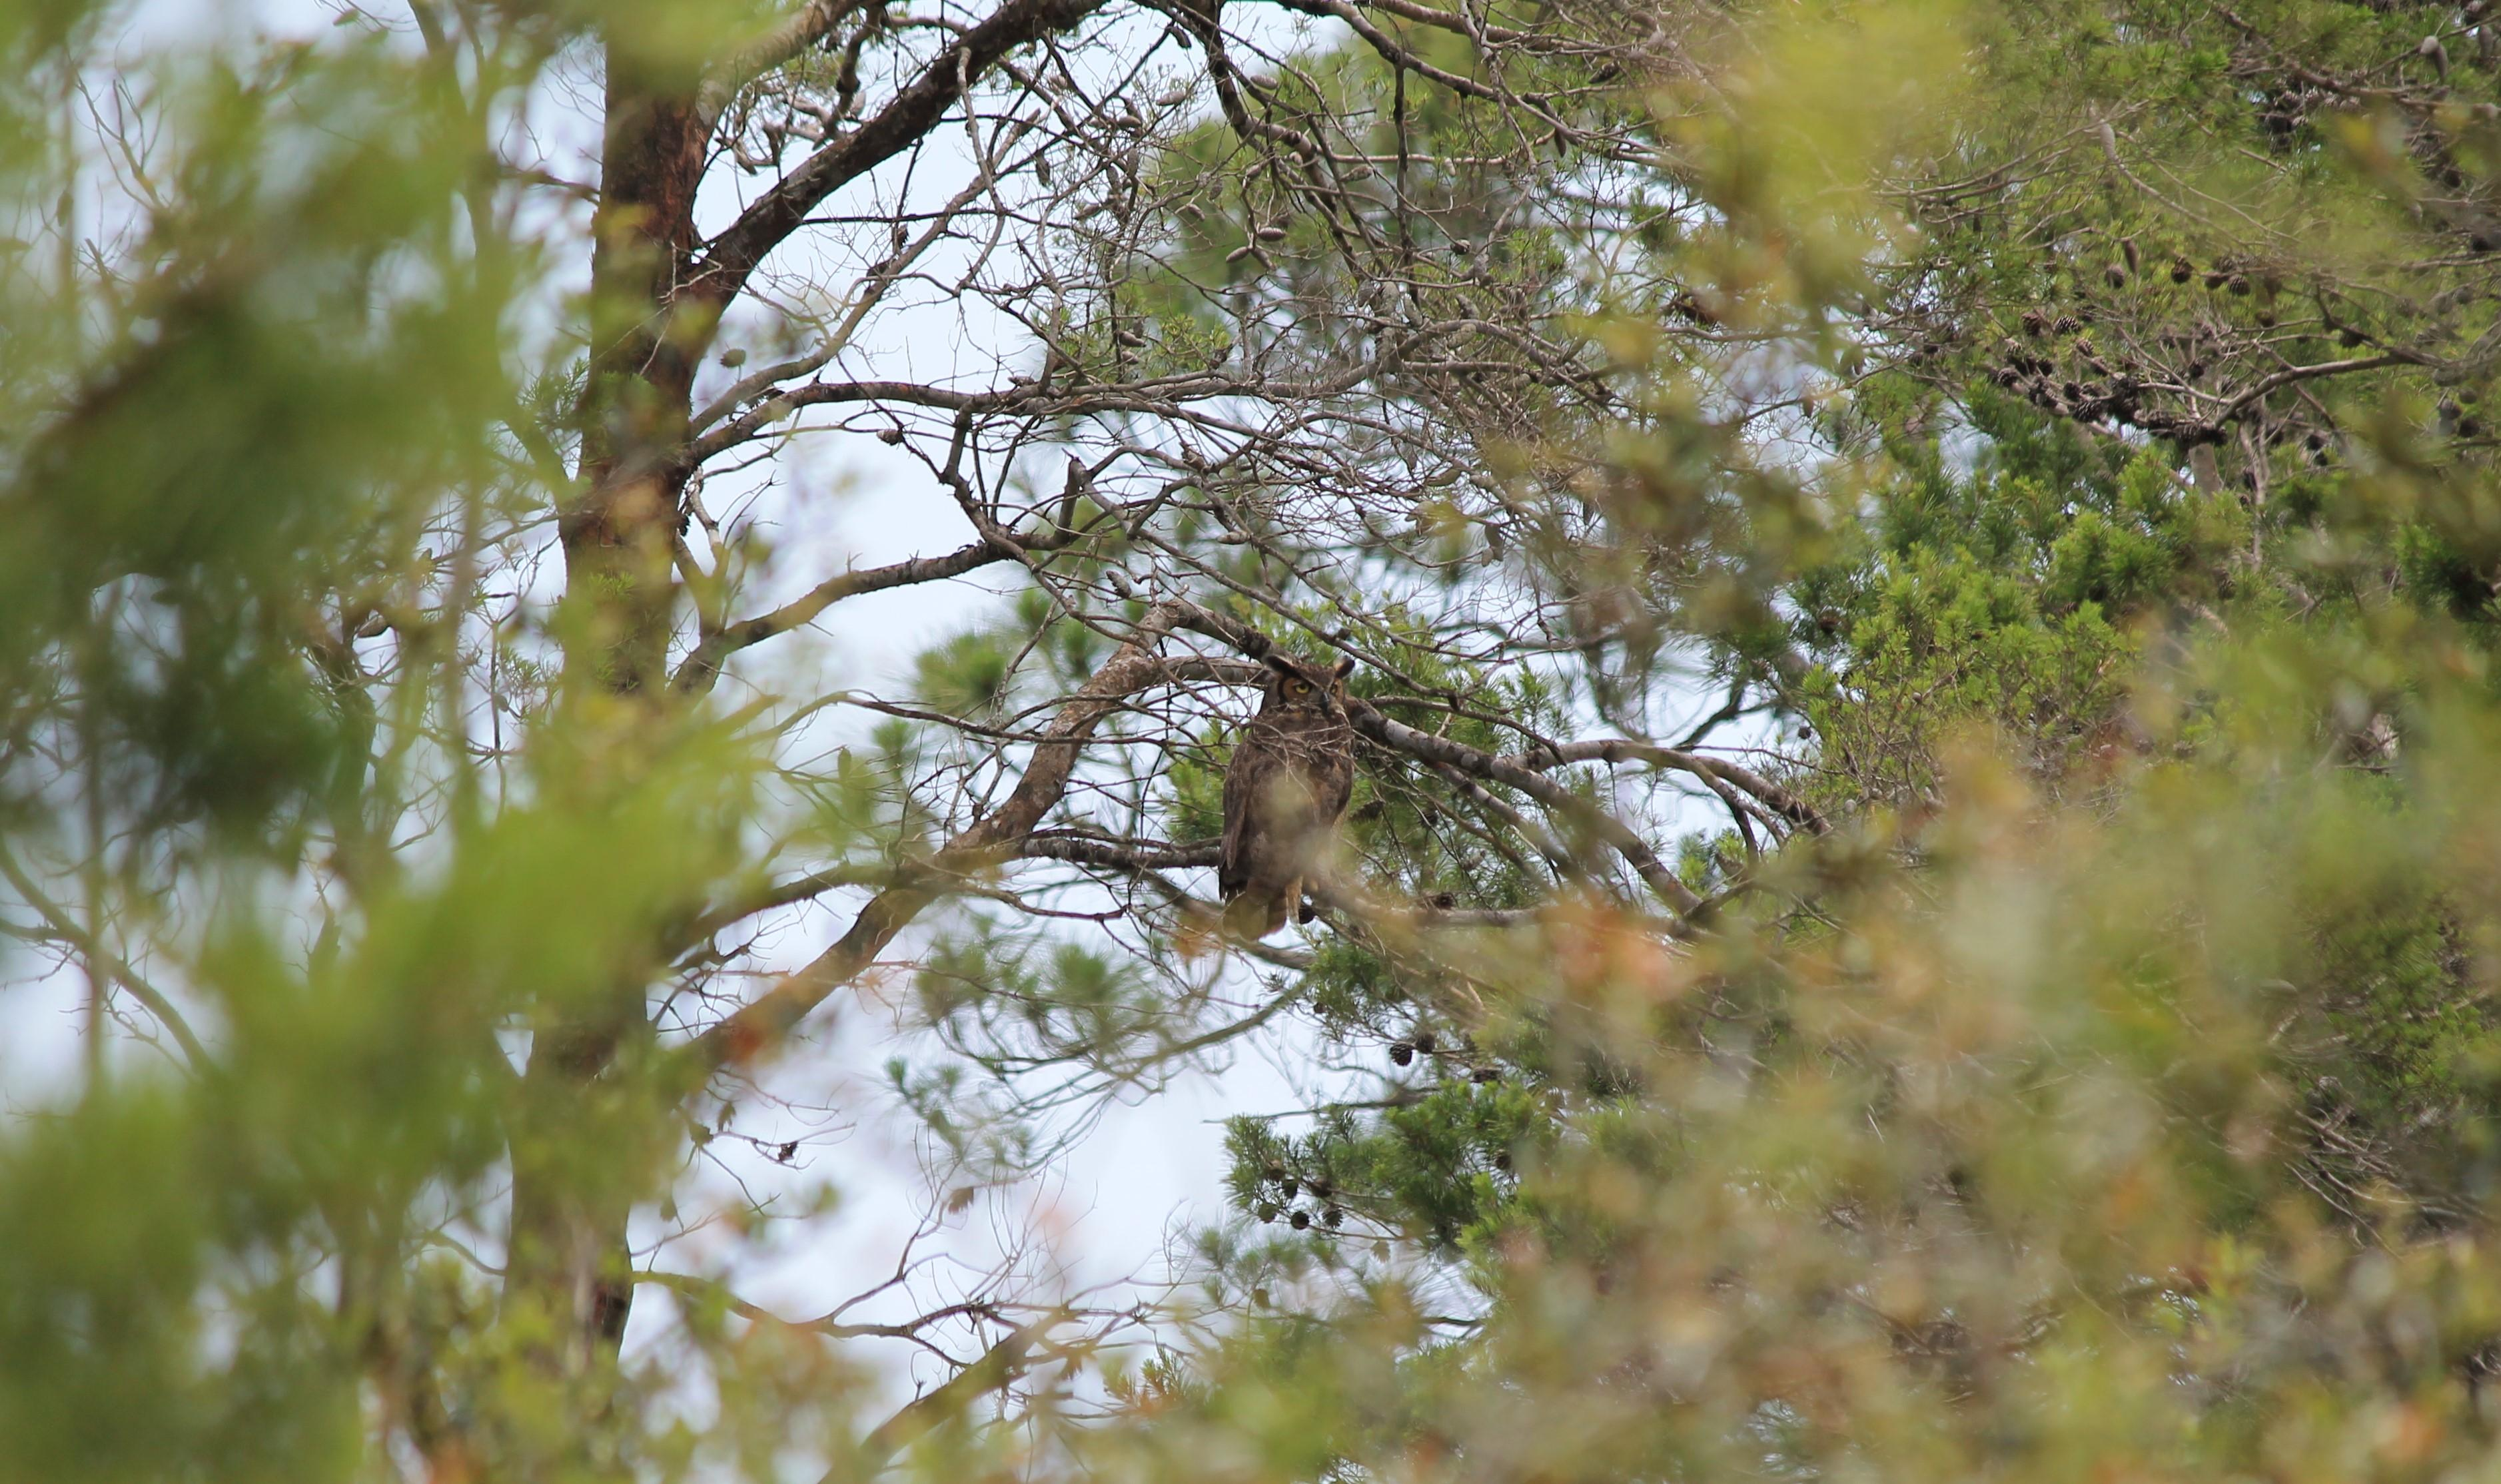 Great-Horned Owl Perched in a Pine Tree. Photo by Farren Dell